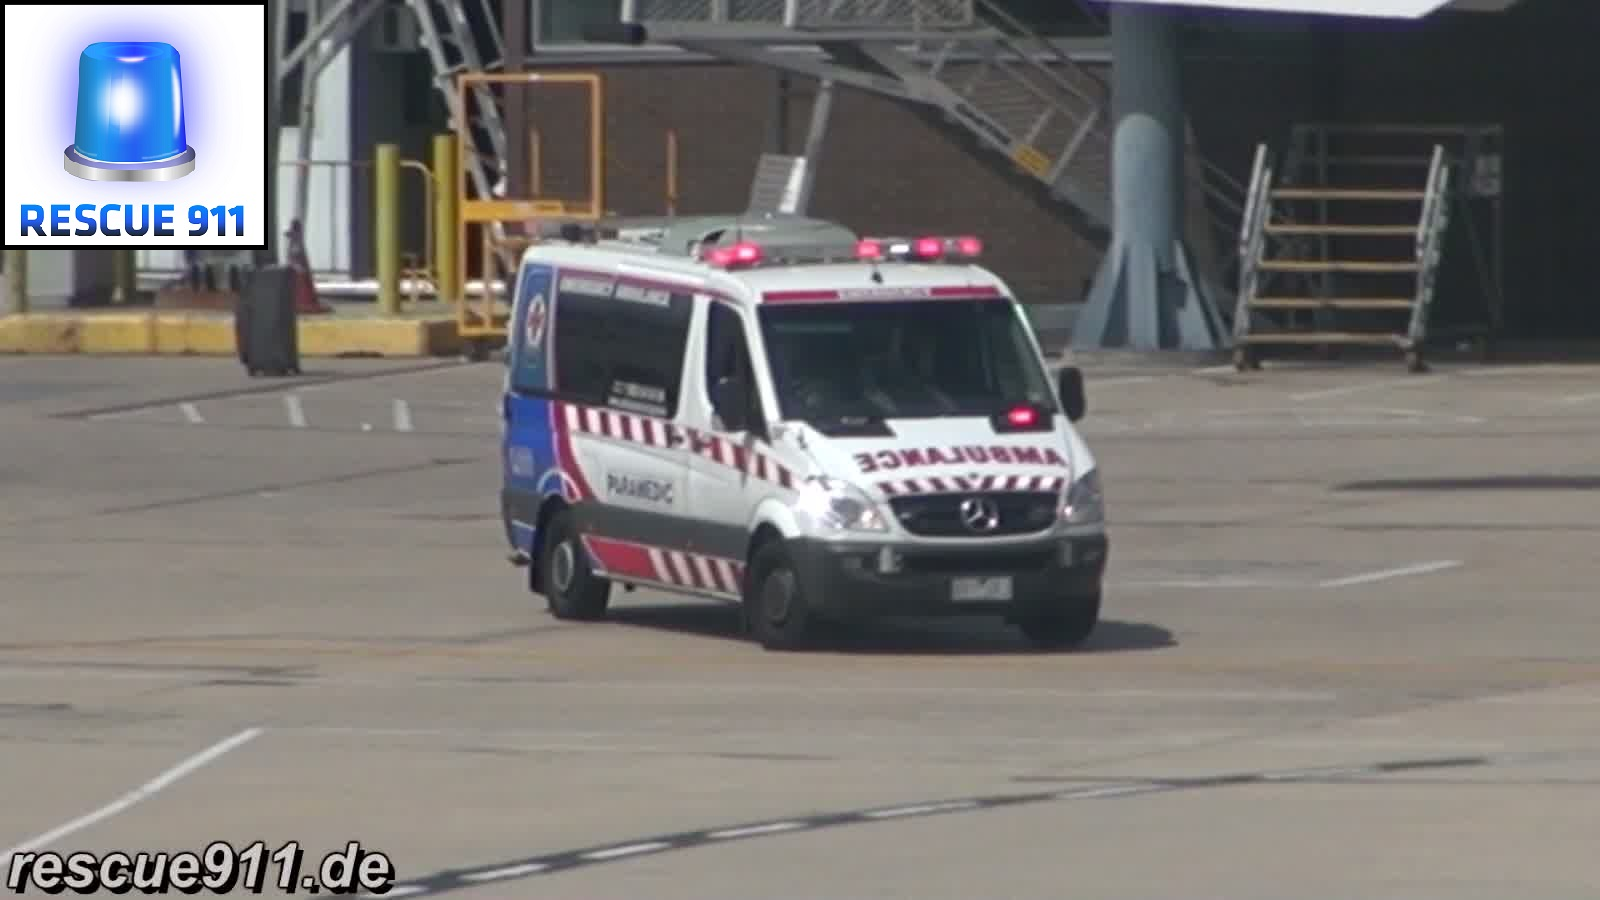 Pumper Melbourne Airport + Ambulance Victoria (stream)